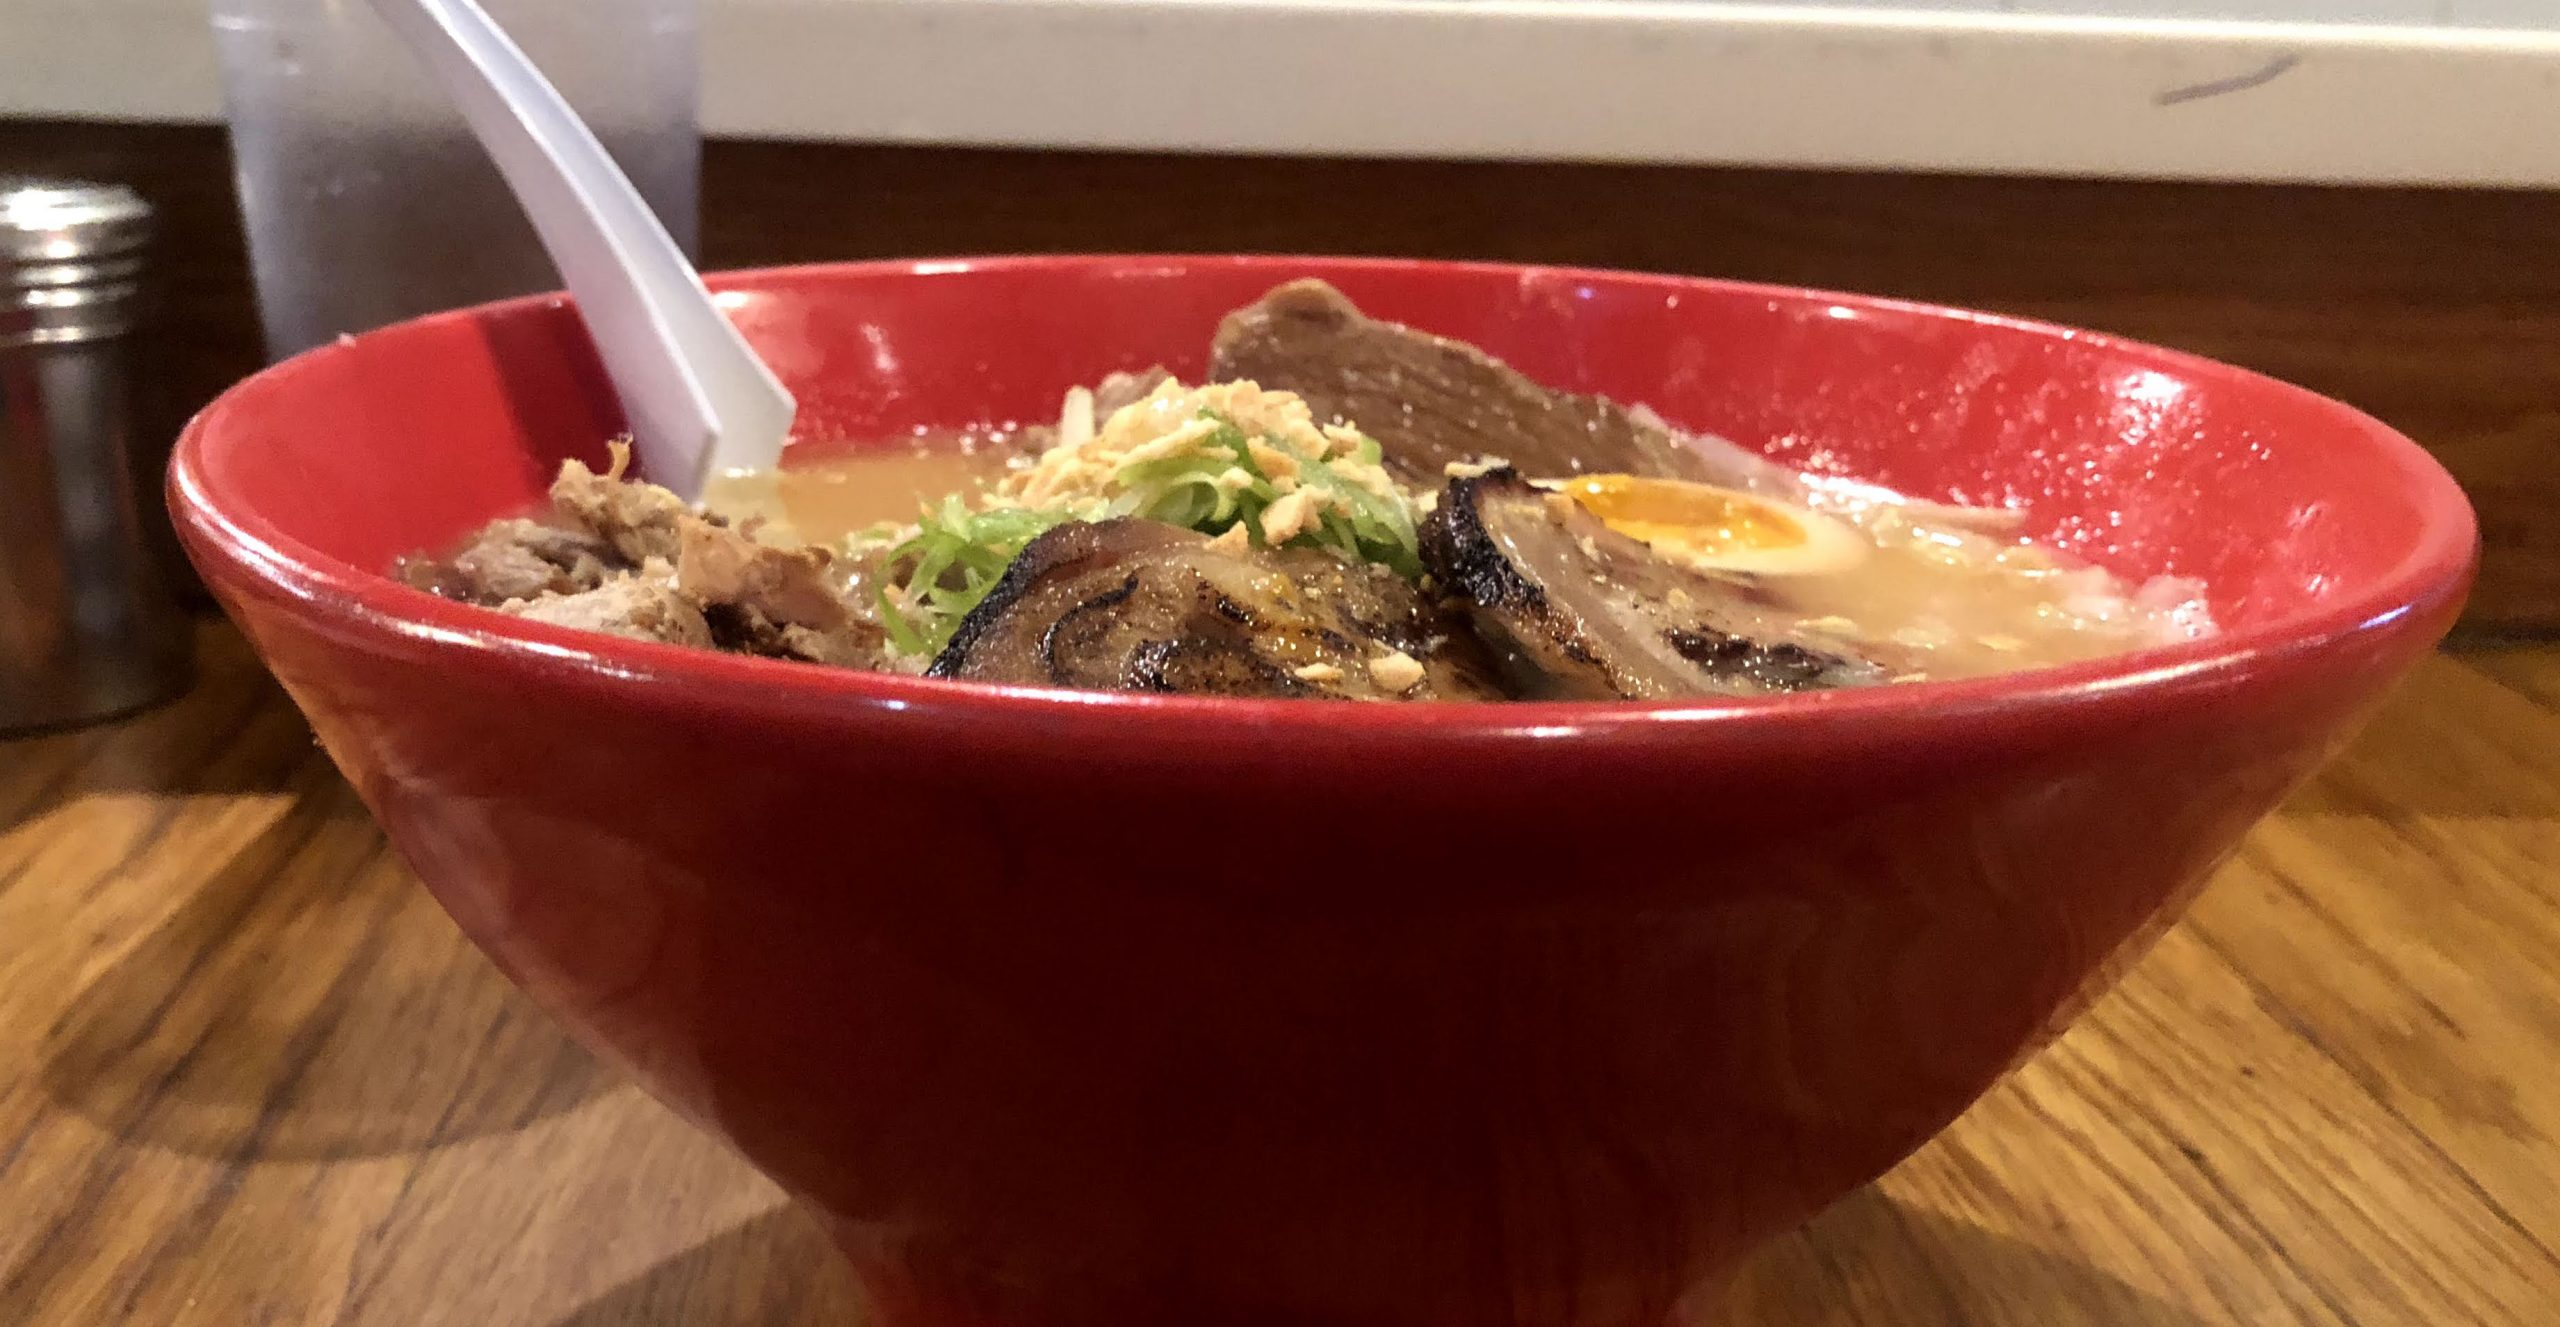 Foto da tigela de ramen do Totto Ramen, em Nova York